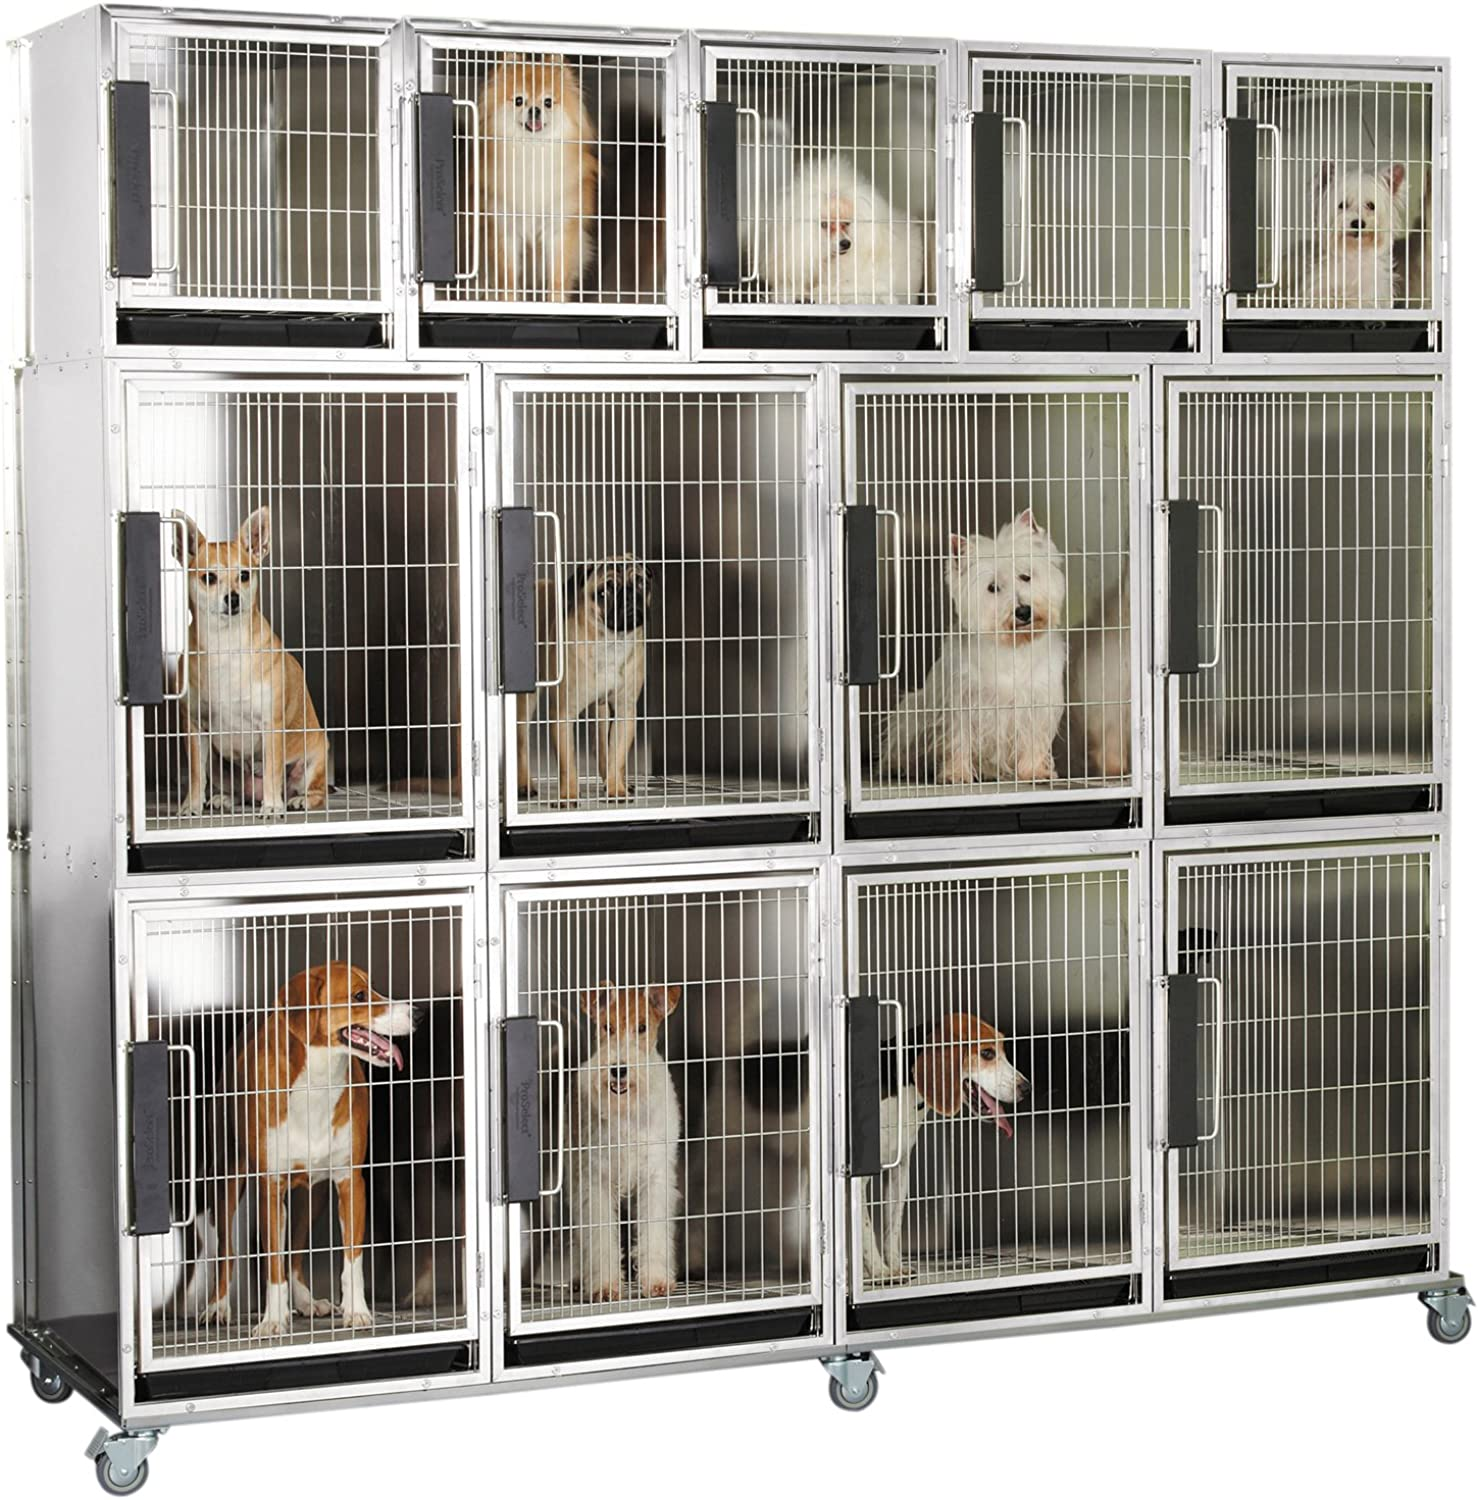 Ppinklect Mod Kennel Cage for Pets, 13Unit